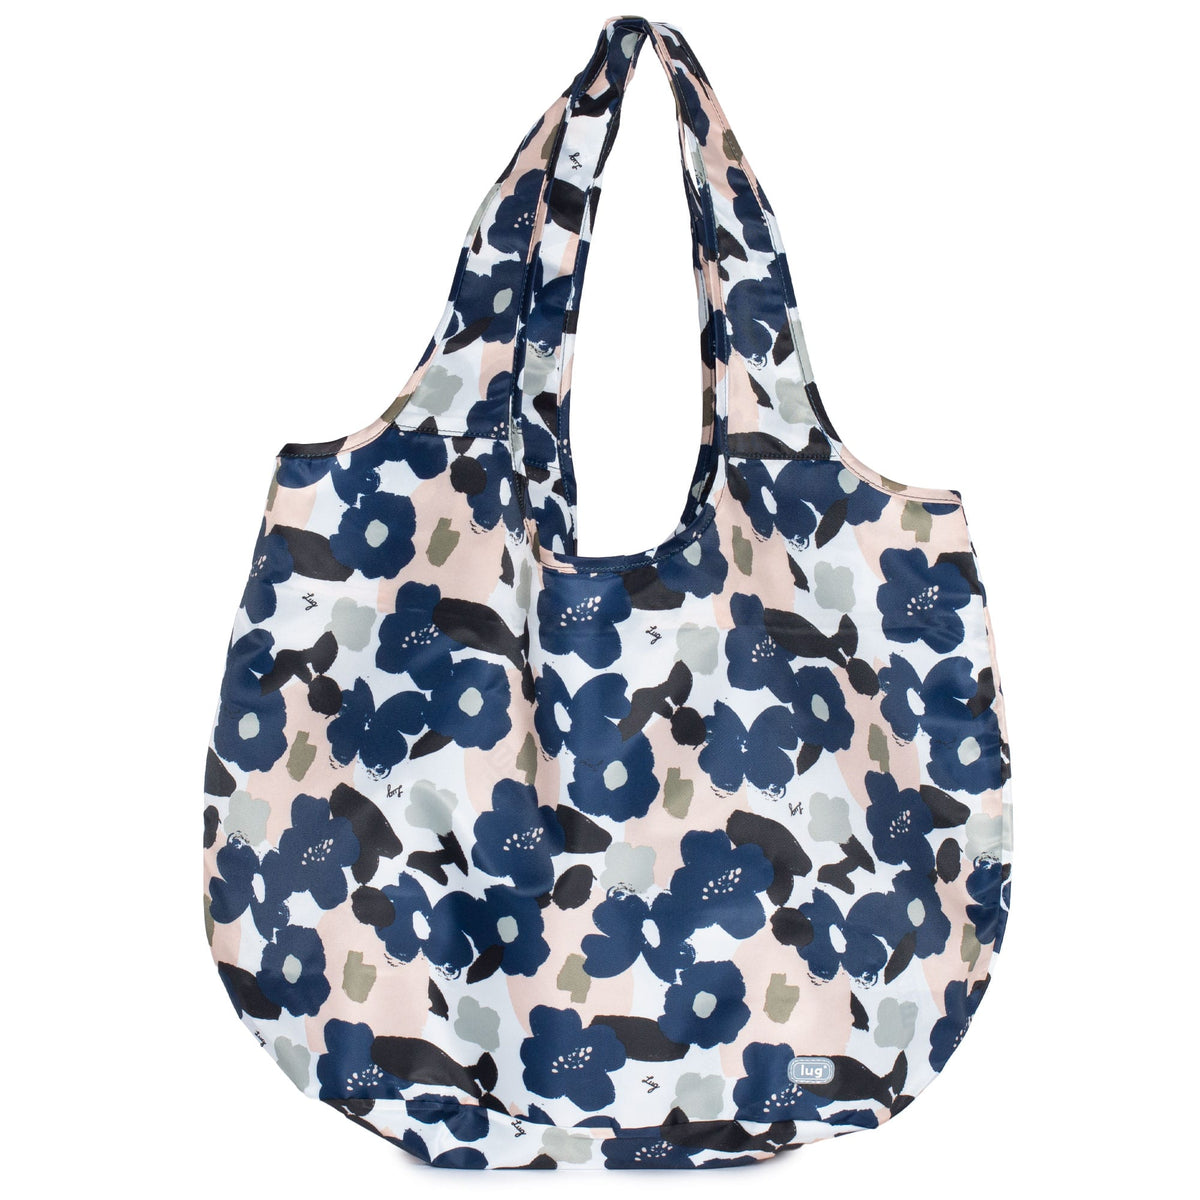 Eco Shopper 2pc Tote Bag